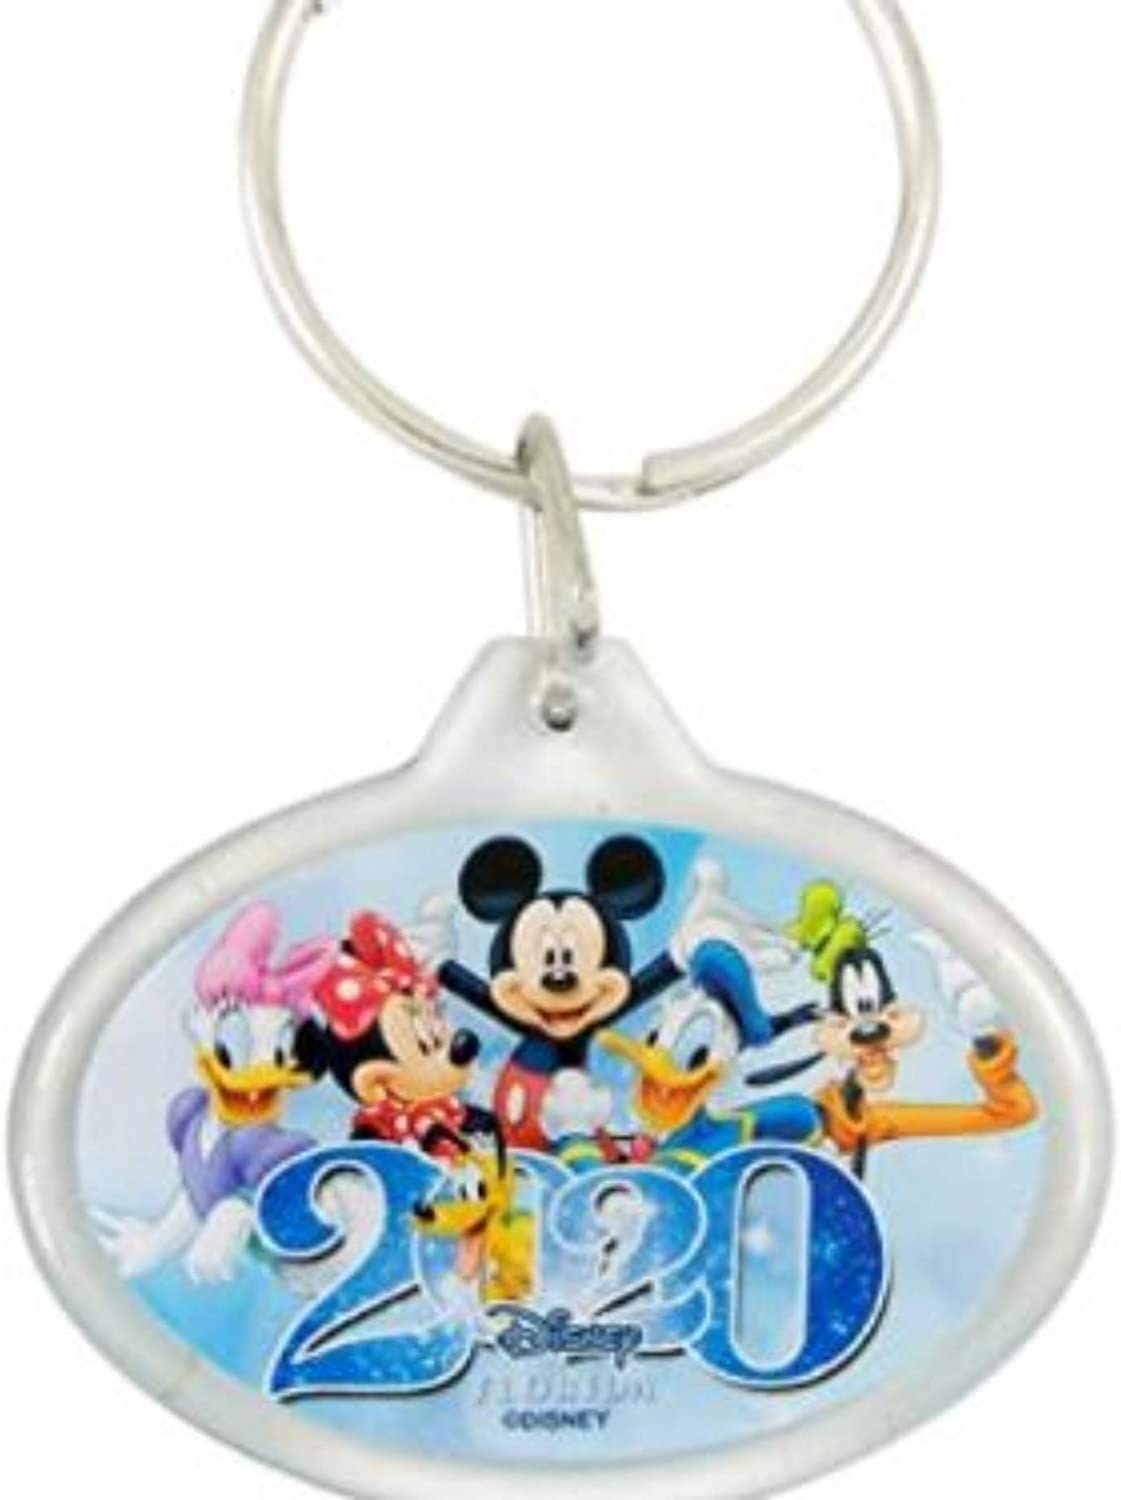 Disney Mickey Mouse And Friends Florida Dated 2020 Keychain, 2 1/4 Inch